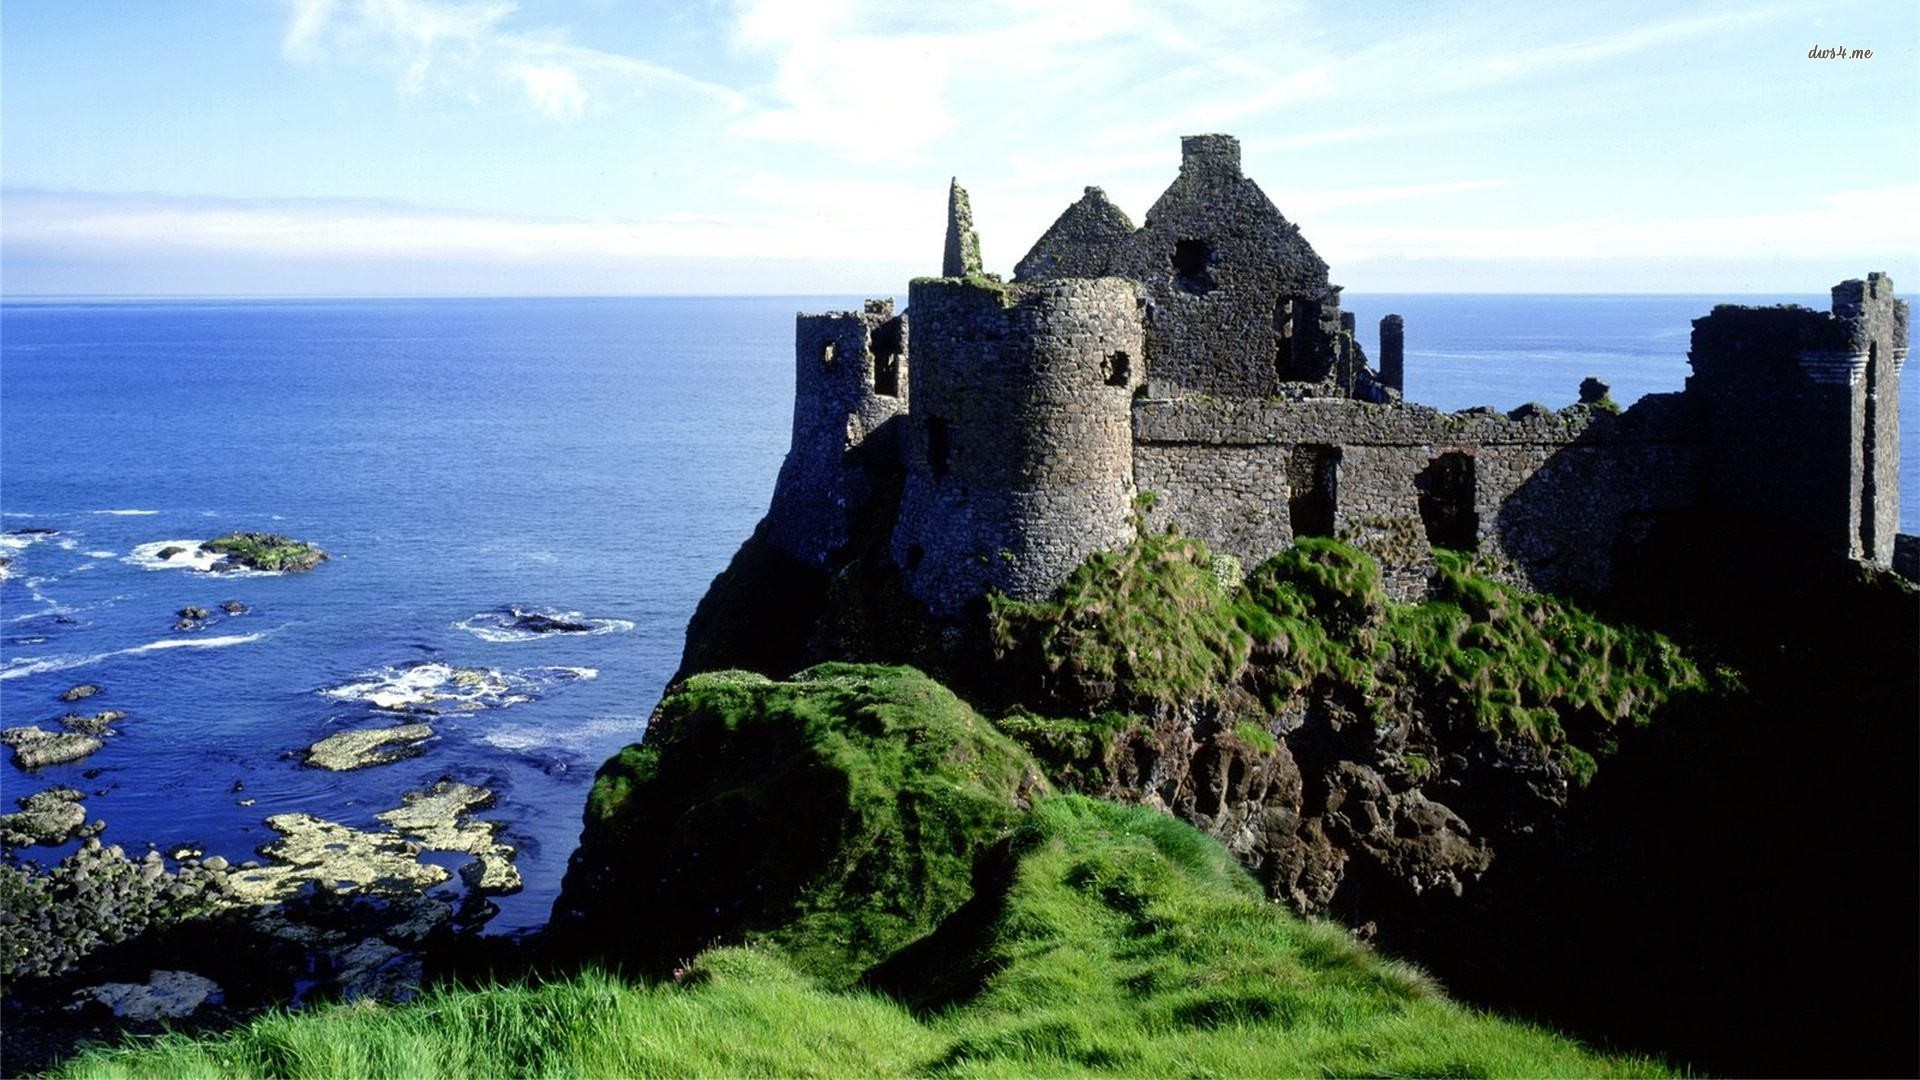 Irish Castles Wallpaper for PC 50 images 1920x1080